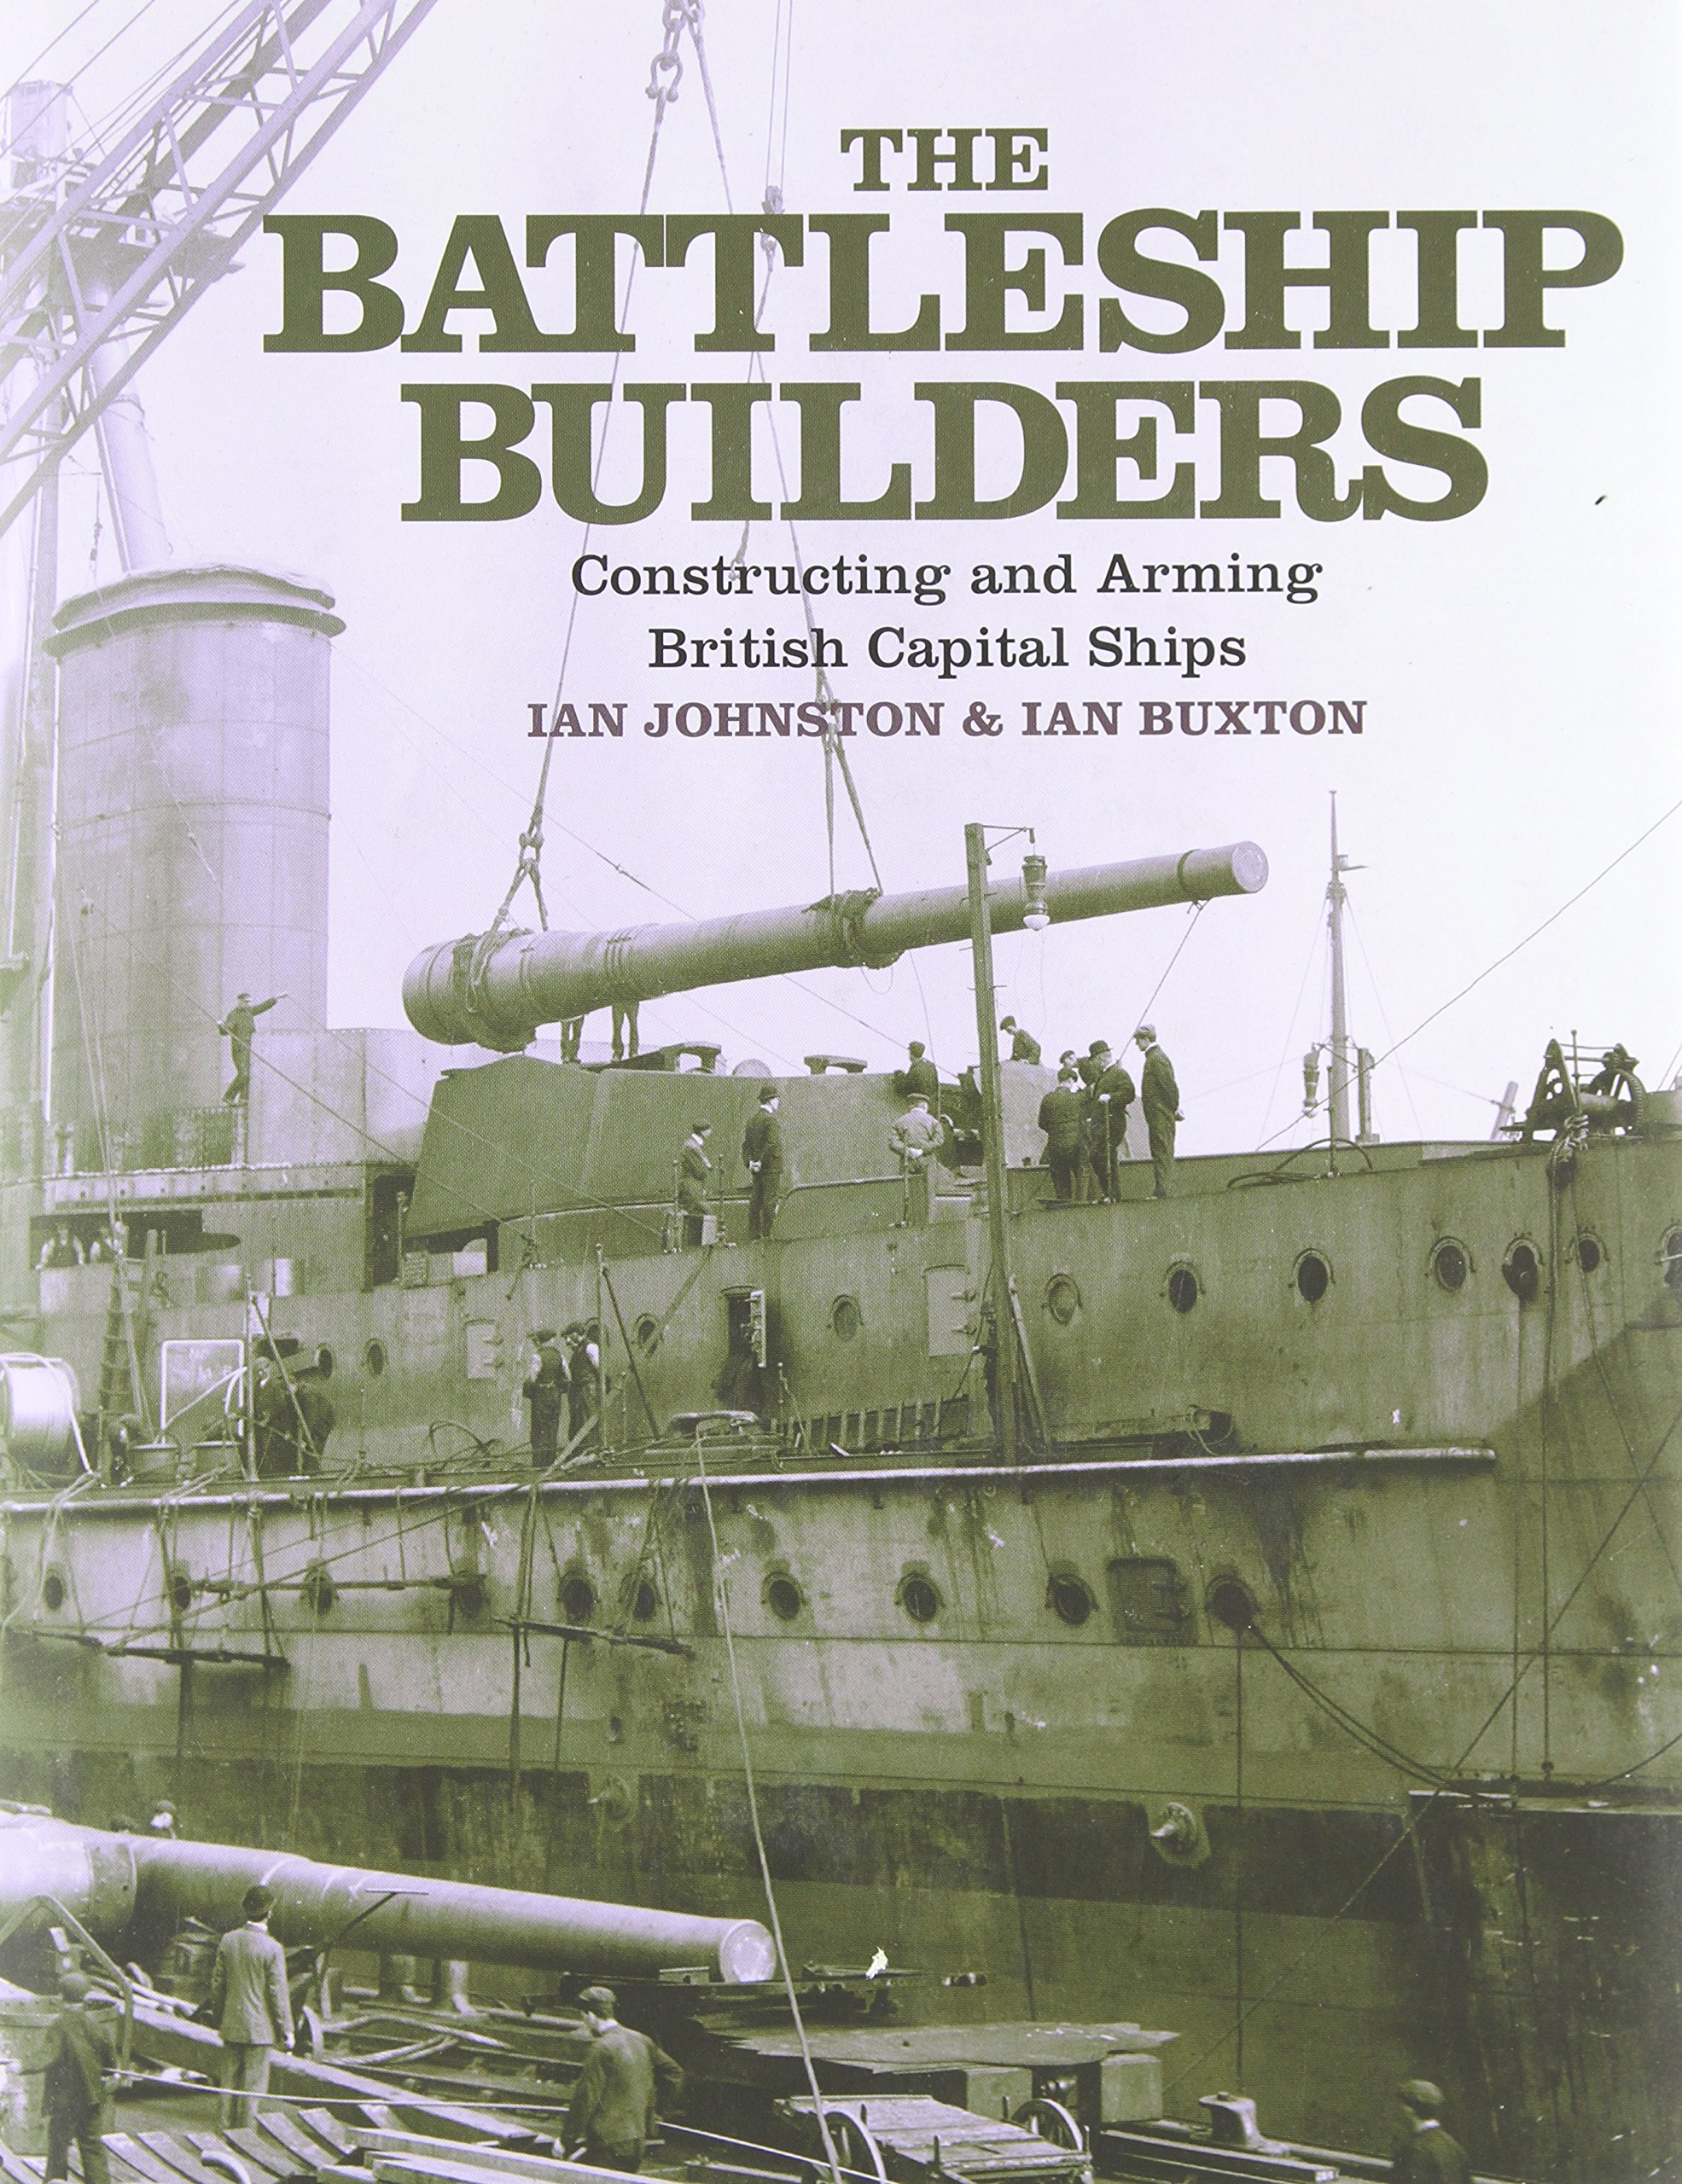 the-battleship-builders-constructing-and-arming-british-capital-ships